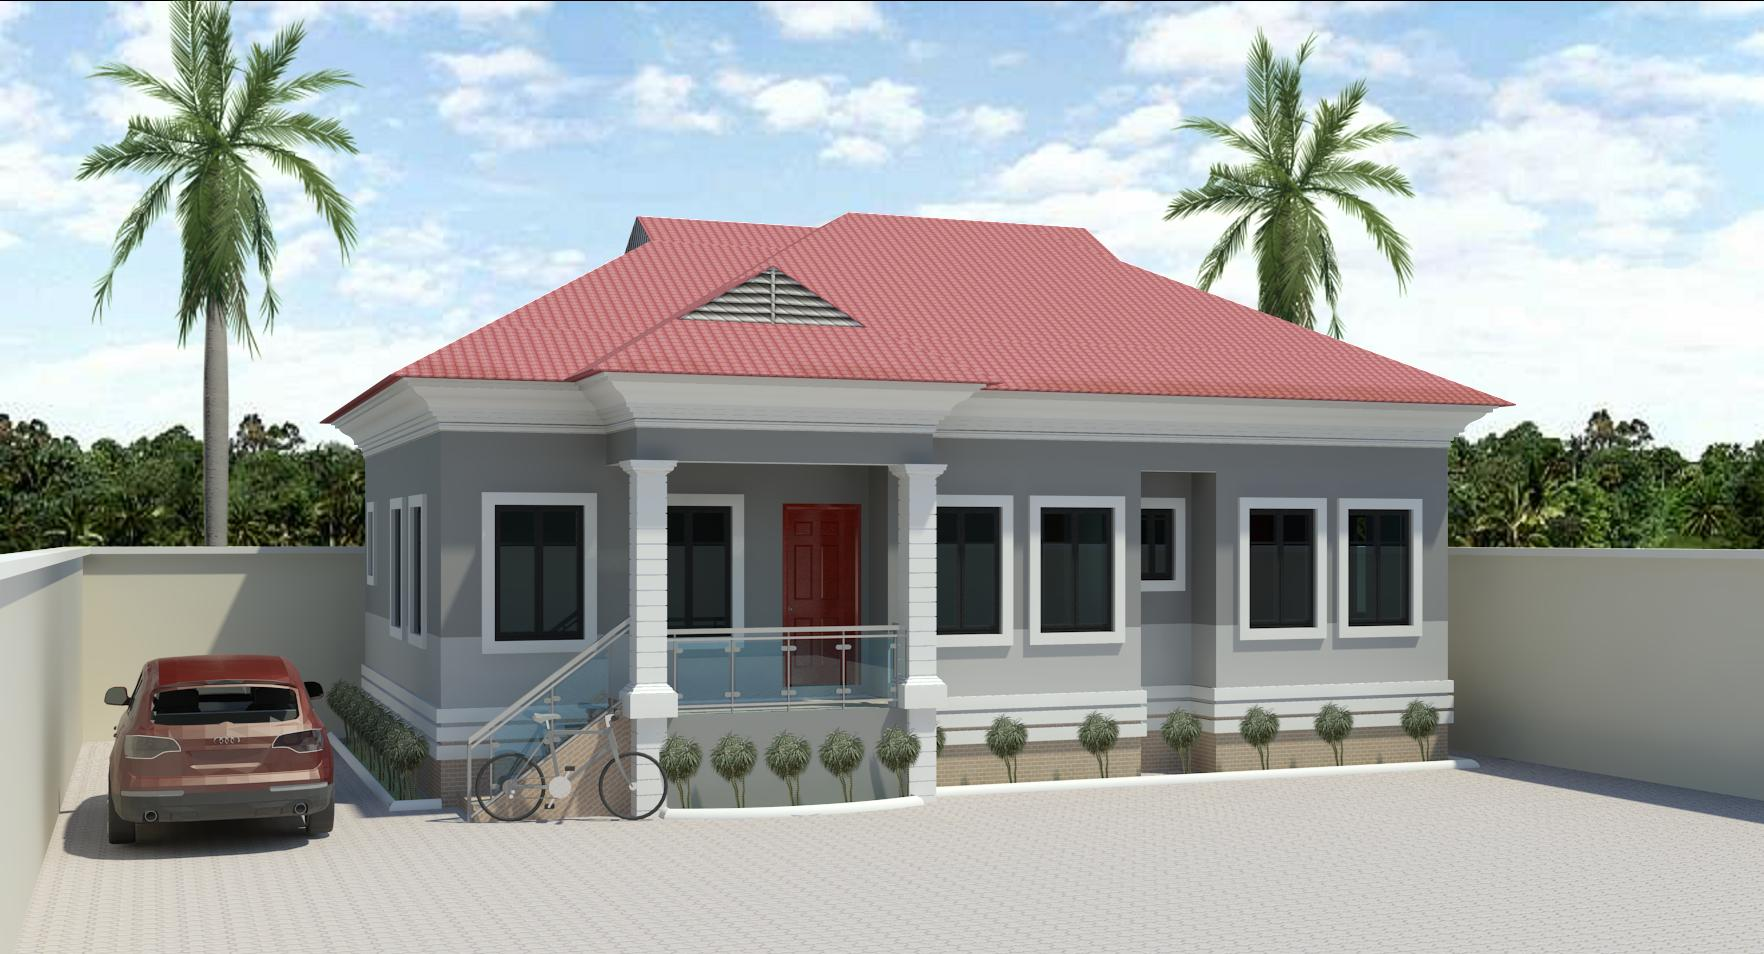 2422799 3d2020agiliti jpegd6efcf4d8b61f8c78b8301fcd1c8527e - 12+ Small 2 Bedroom House Plans And Designs In Nigeria PNG